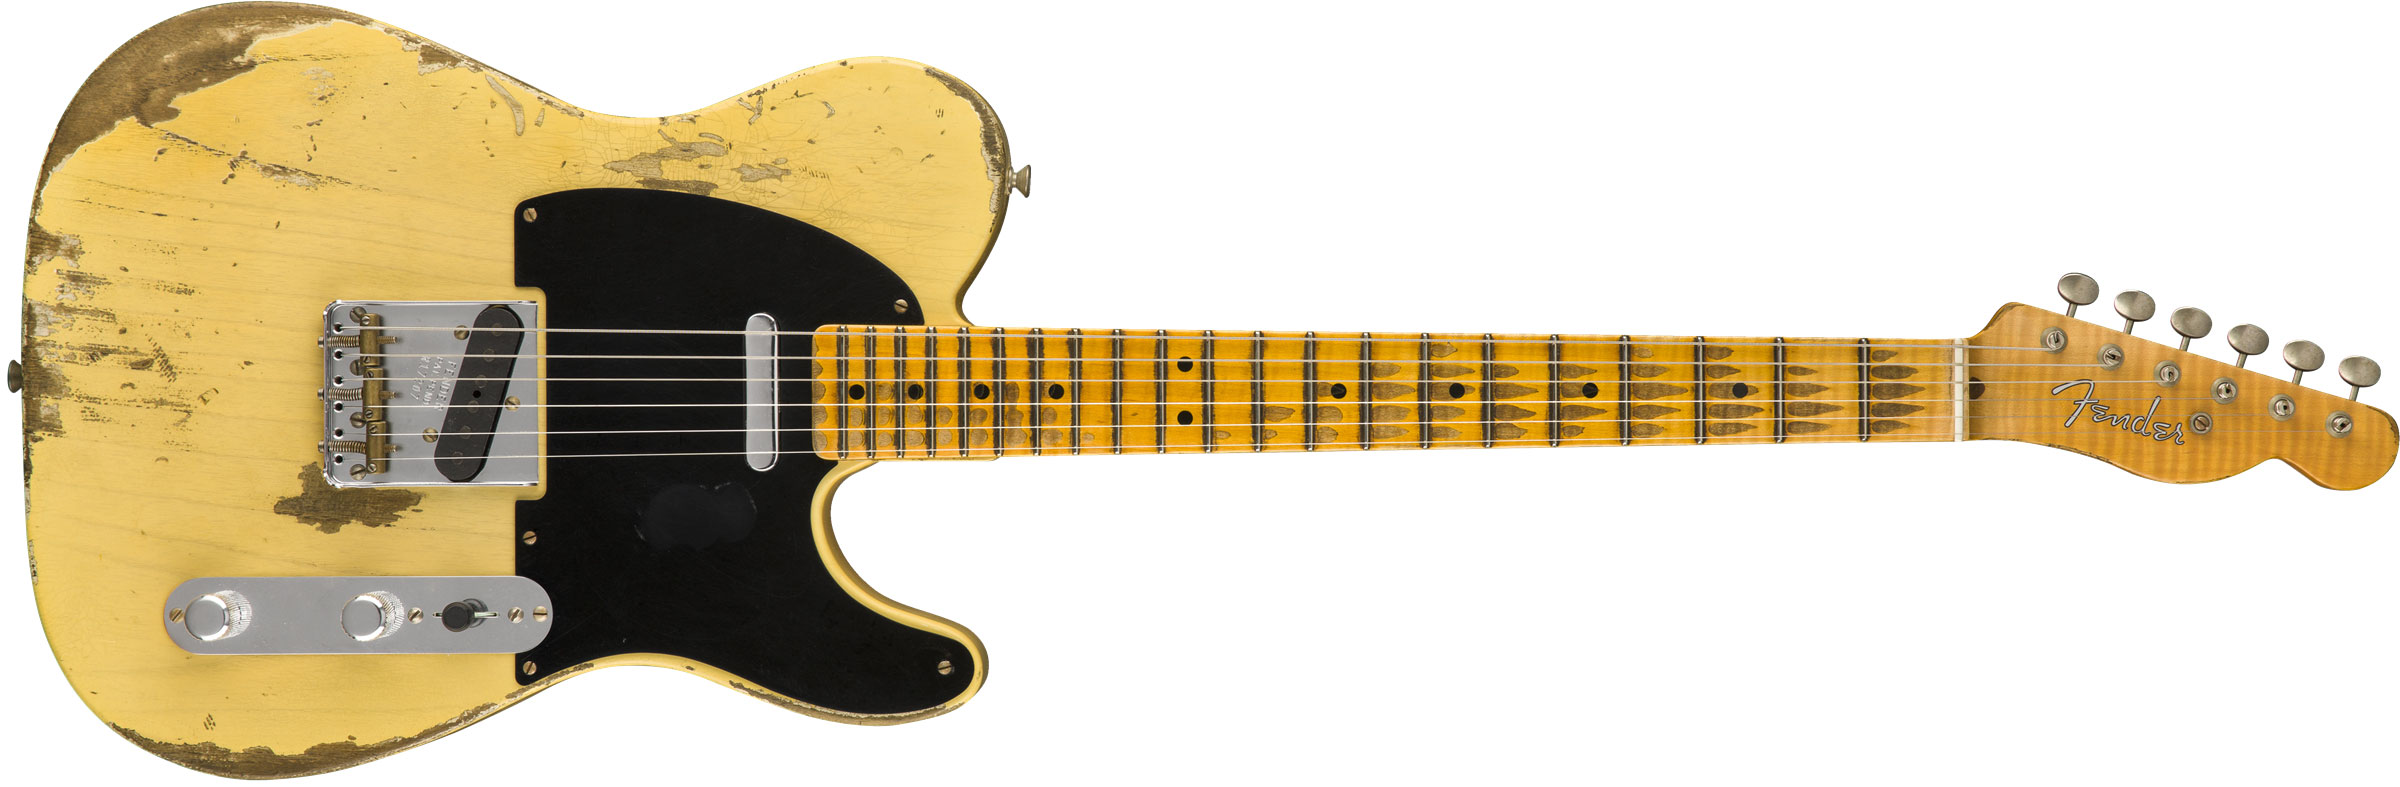 GUITARRA FENDER 51 NOCASTER HEAVY RELIC LTD 2018 COLLECTION 923-5000-521 FADED NOCASTER BLOND